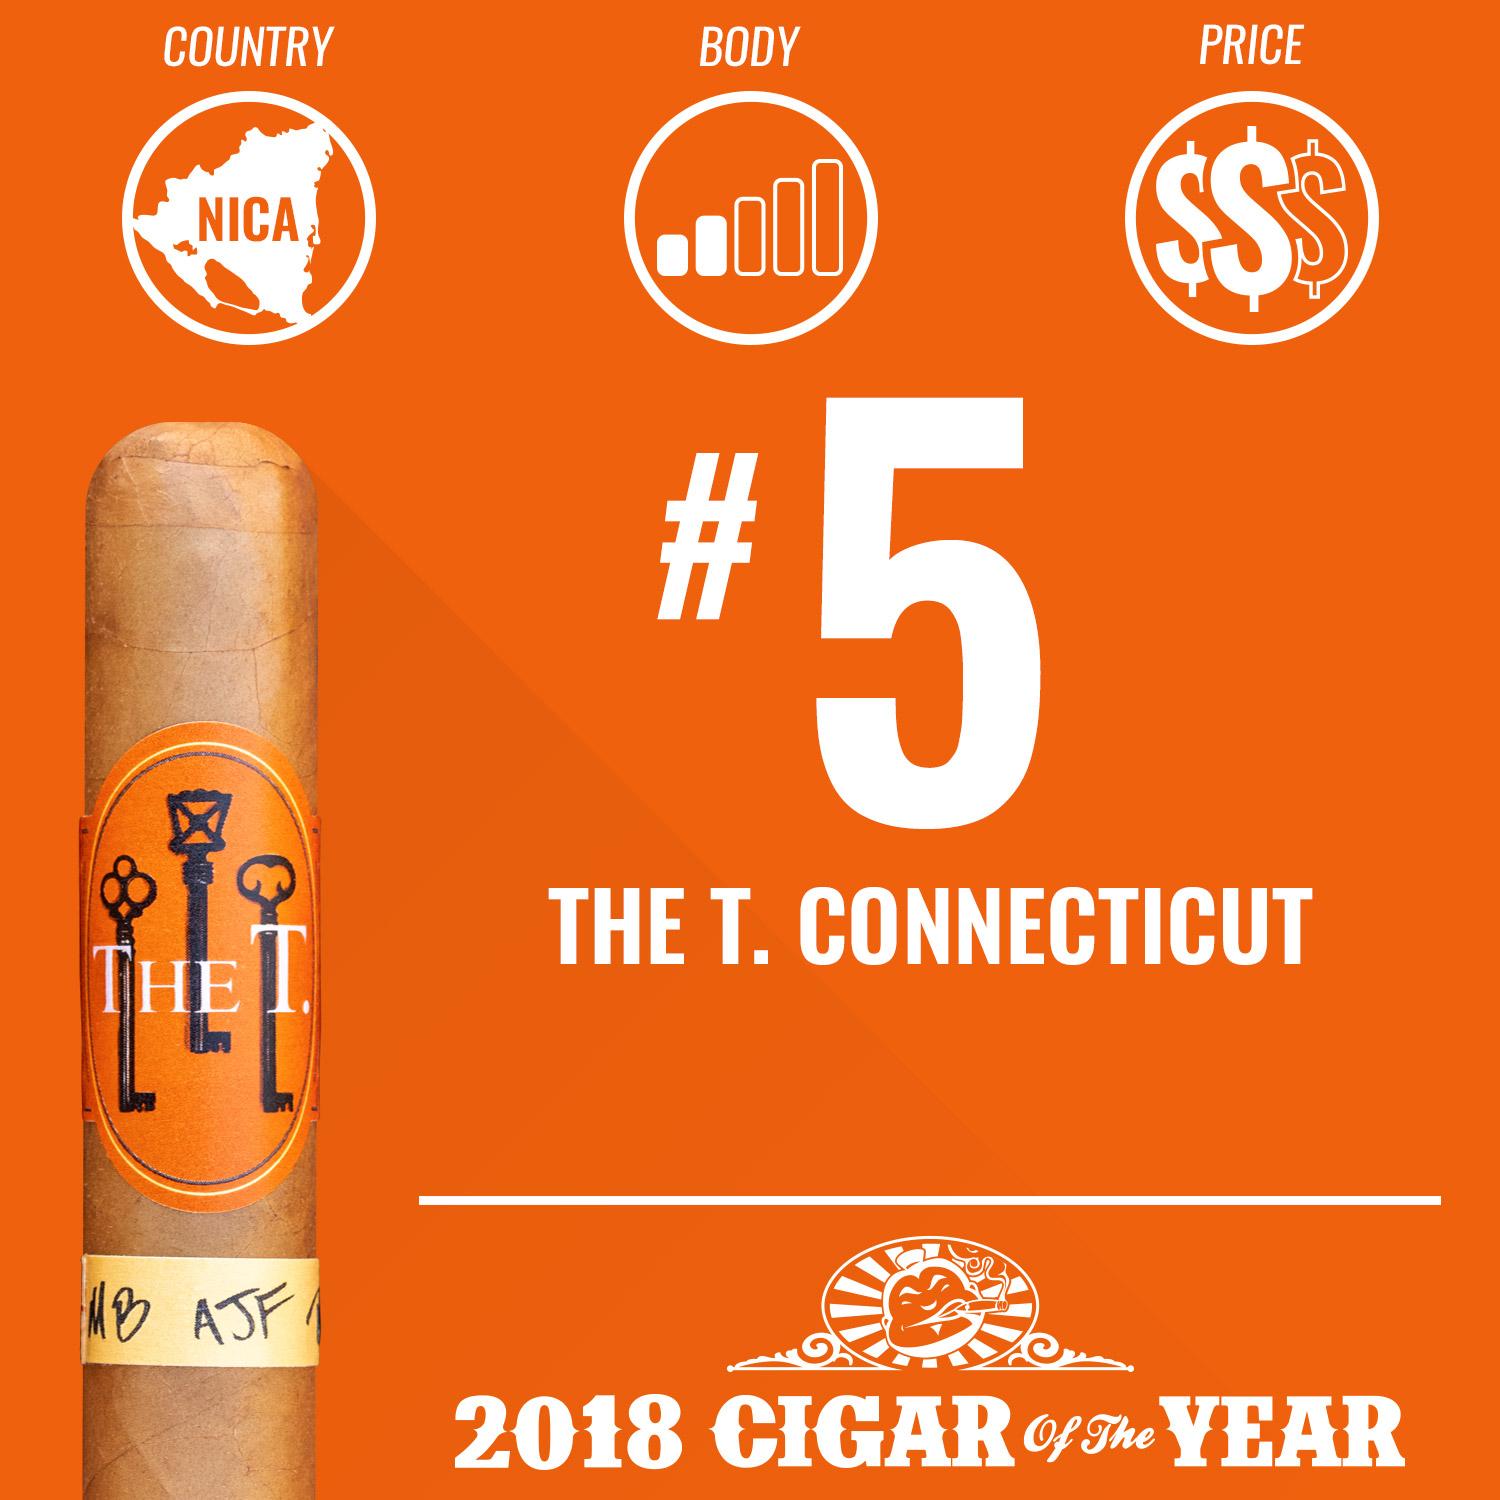 The T. Connecticut No. 5 Cigar of the Year 2018